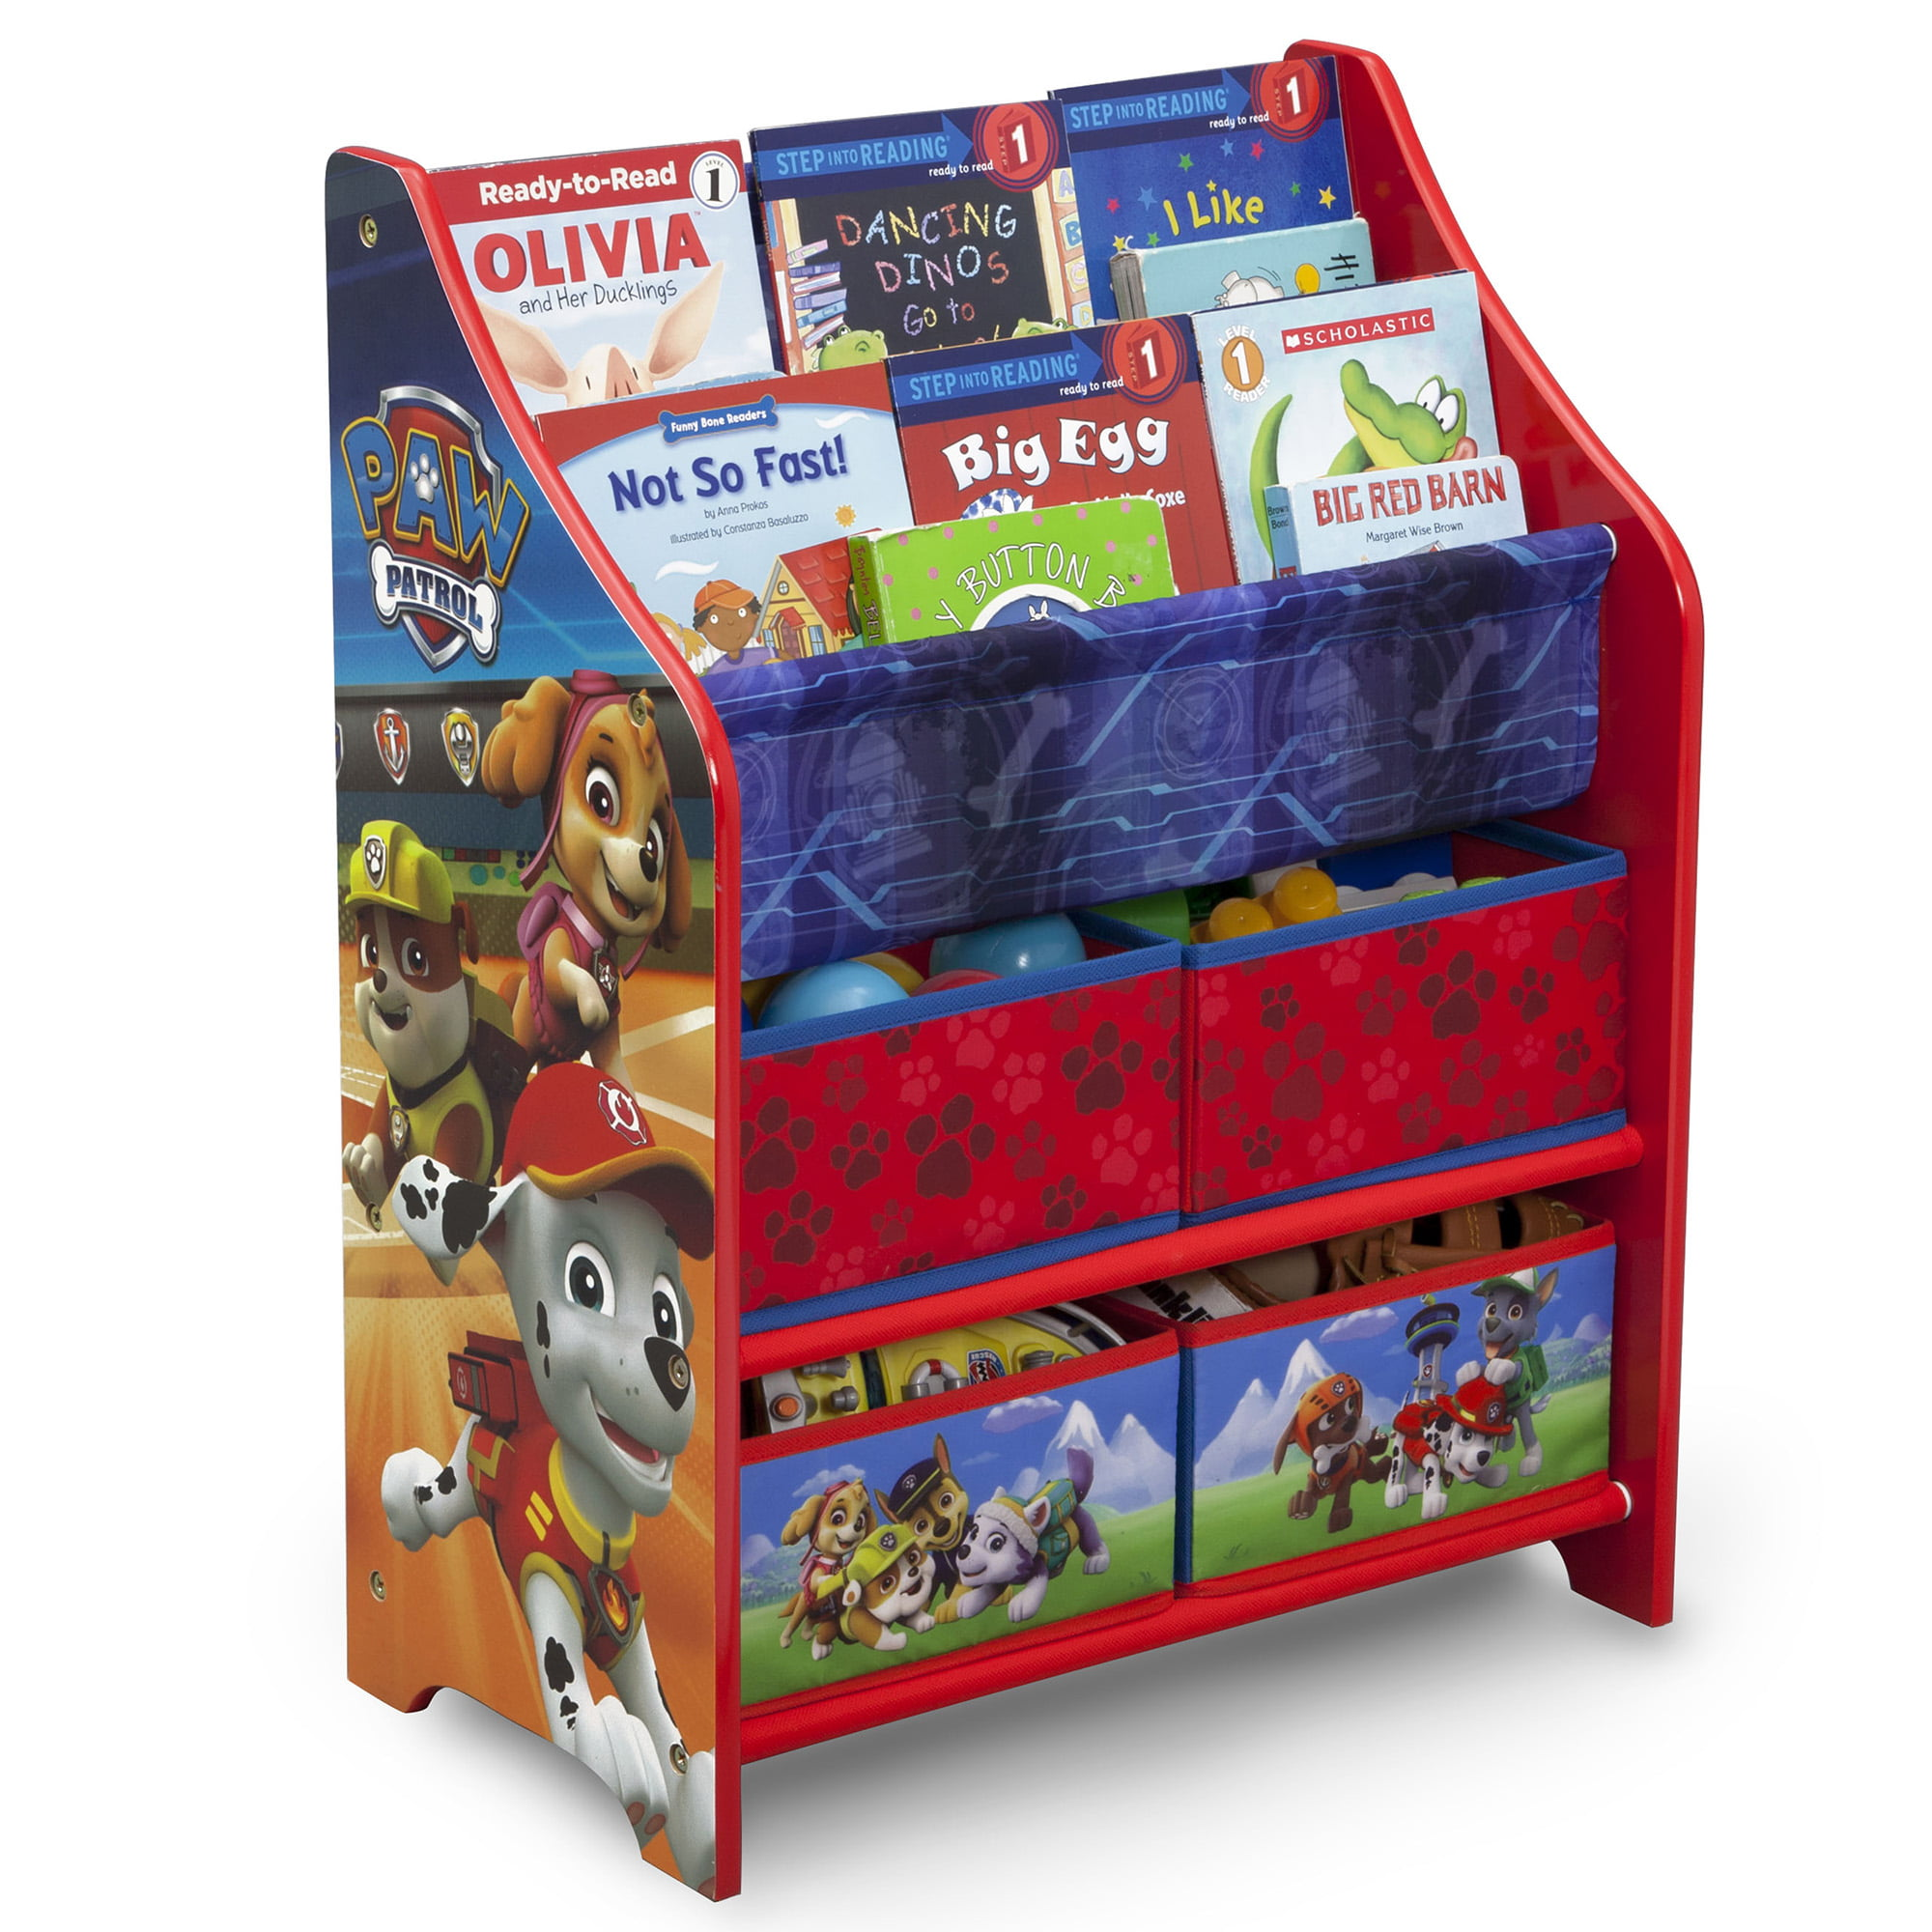 Paw Patrol Toy Organizer Bin Cubby Kids Child Storage Box: Nick Jr. PAW Patrol Book And Toy Organizer By Delta